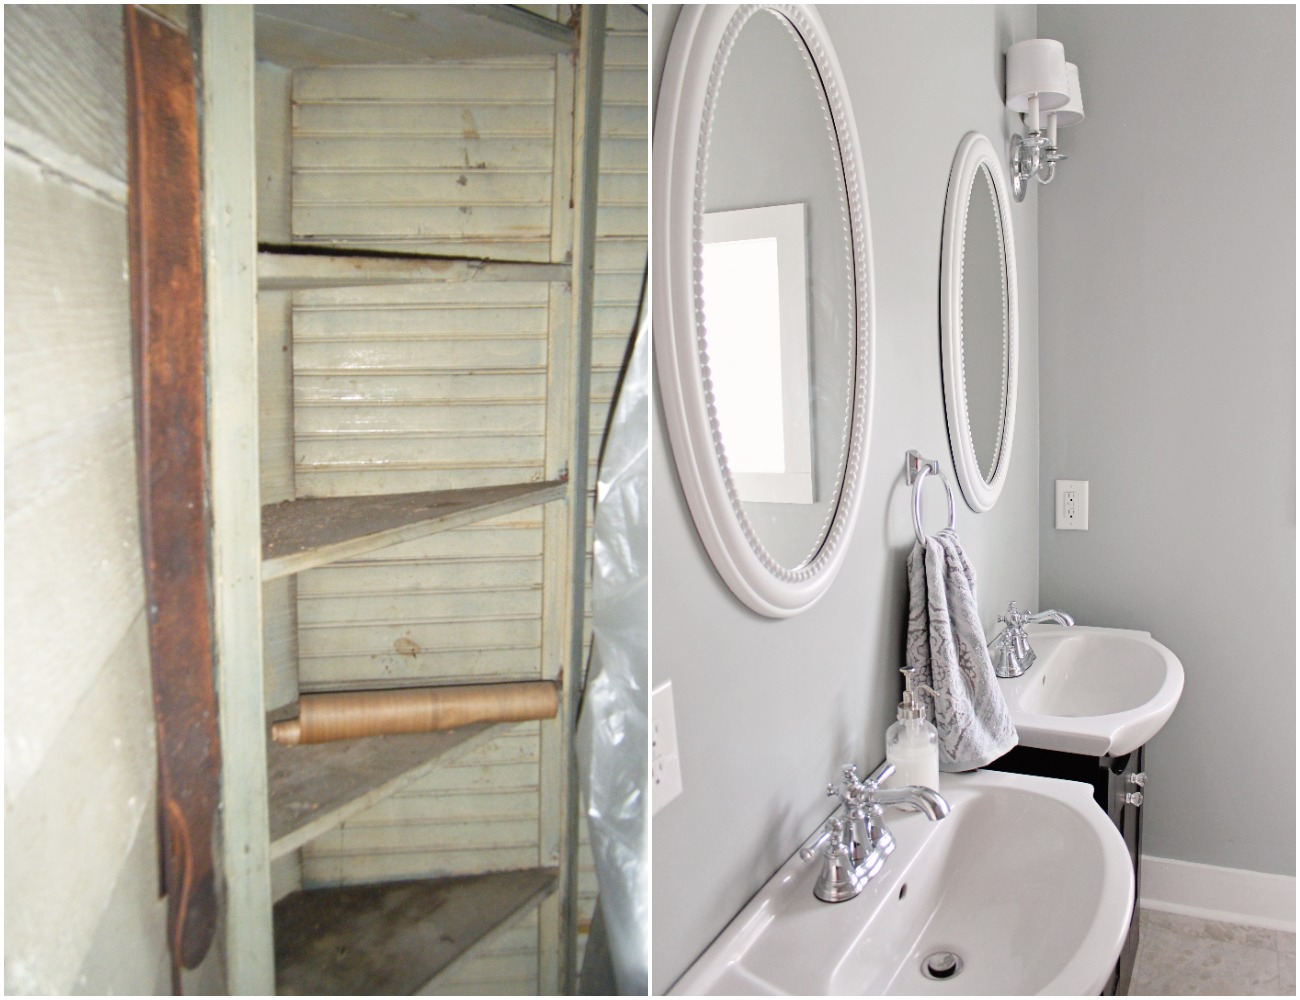 Elizabeth Burns Design  Budget-Friendly Fixer Upper Farmhouse Before and After House Flip - DIY Small Master Bathroom with Two Sinks and Subway Tile - Sherwin Williams Magnetic Gray (3).jpg